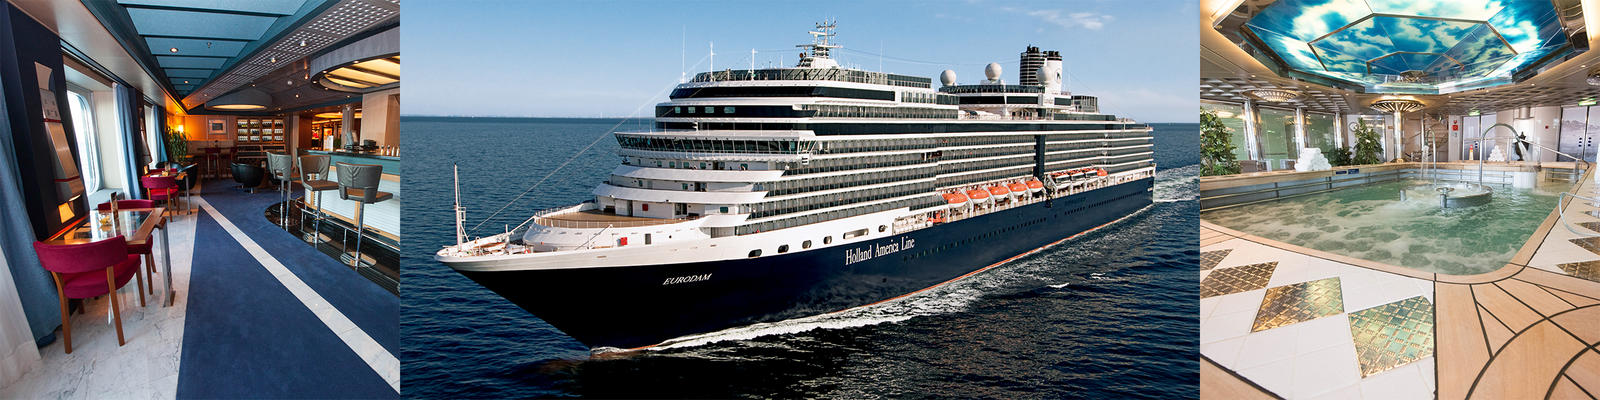 Best Holland America Cruises Reviews And Photos - Best holland america cruise ship